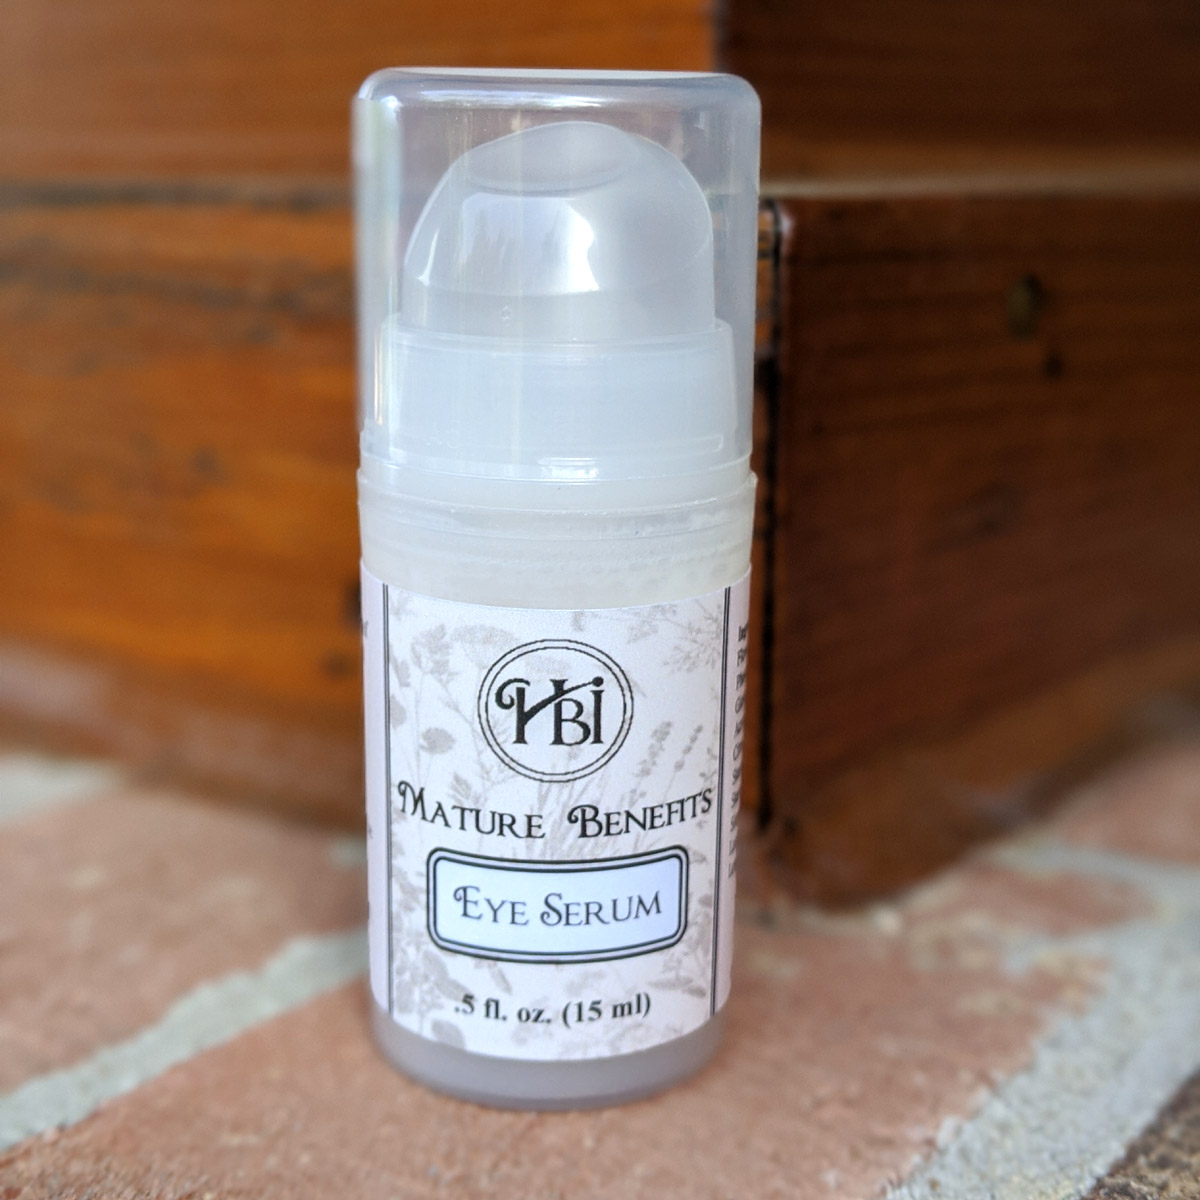 HBI Mature Benefits Eye Serum